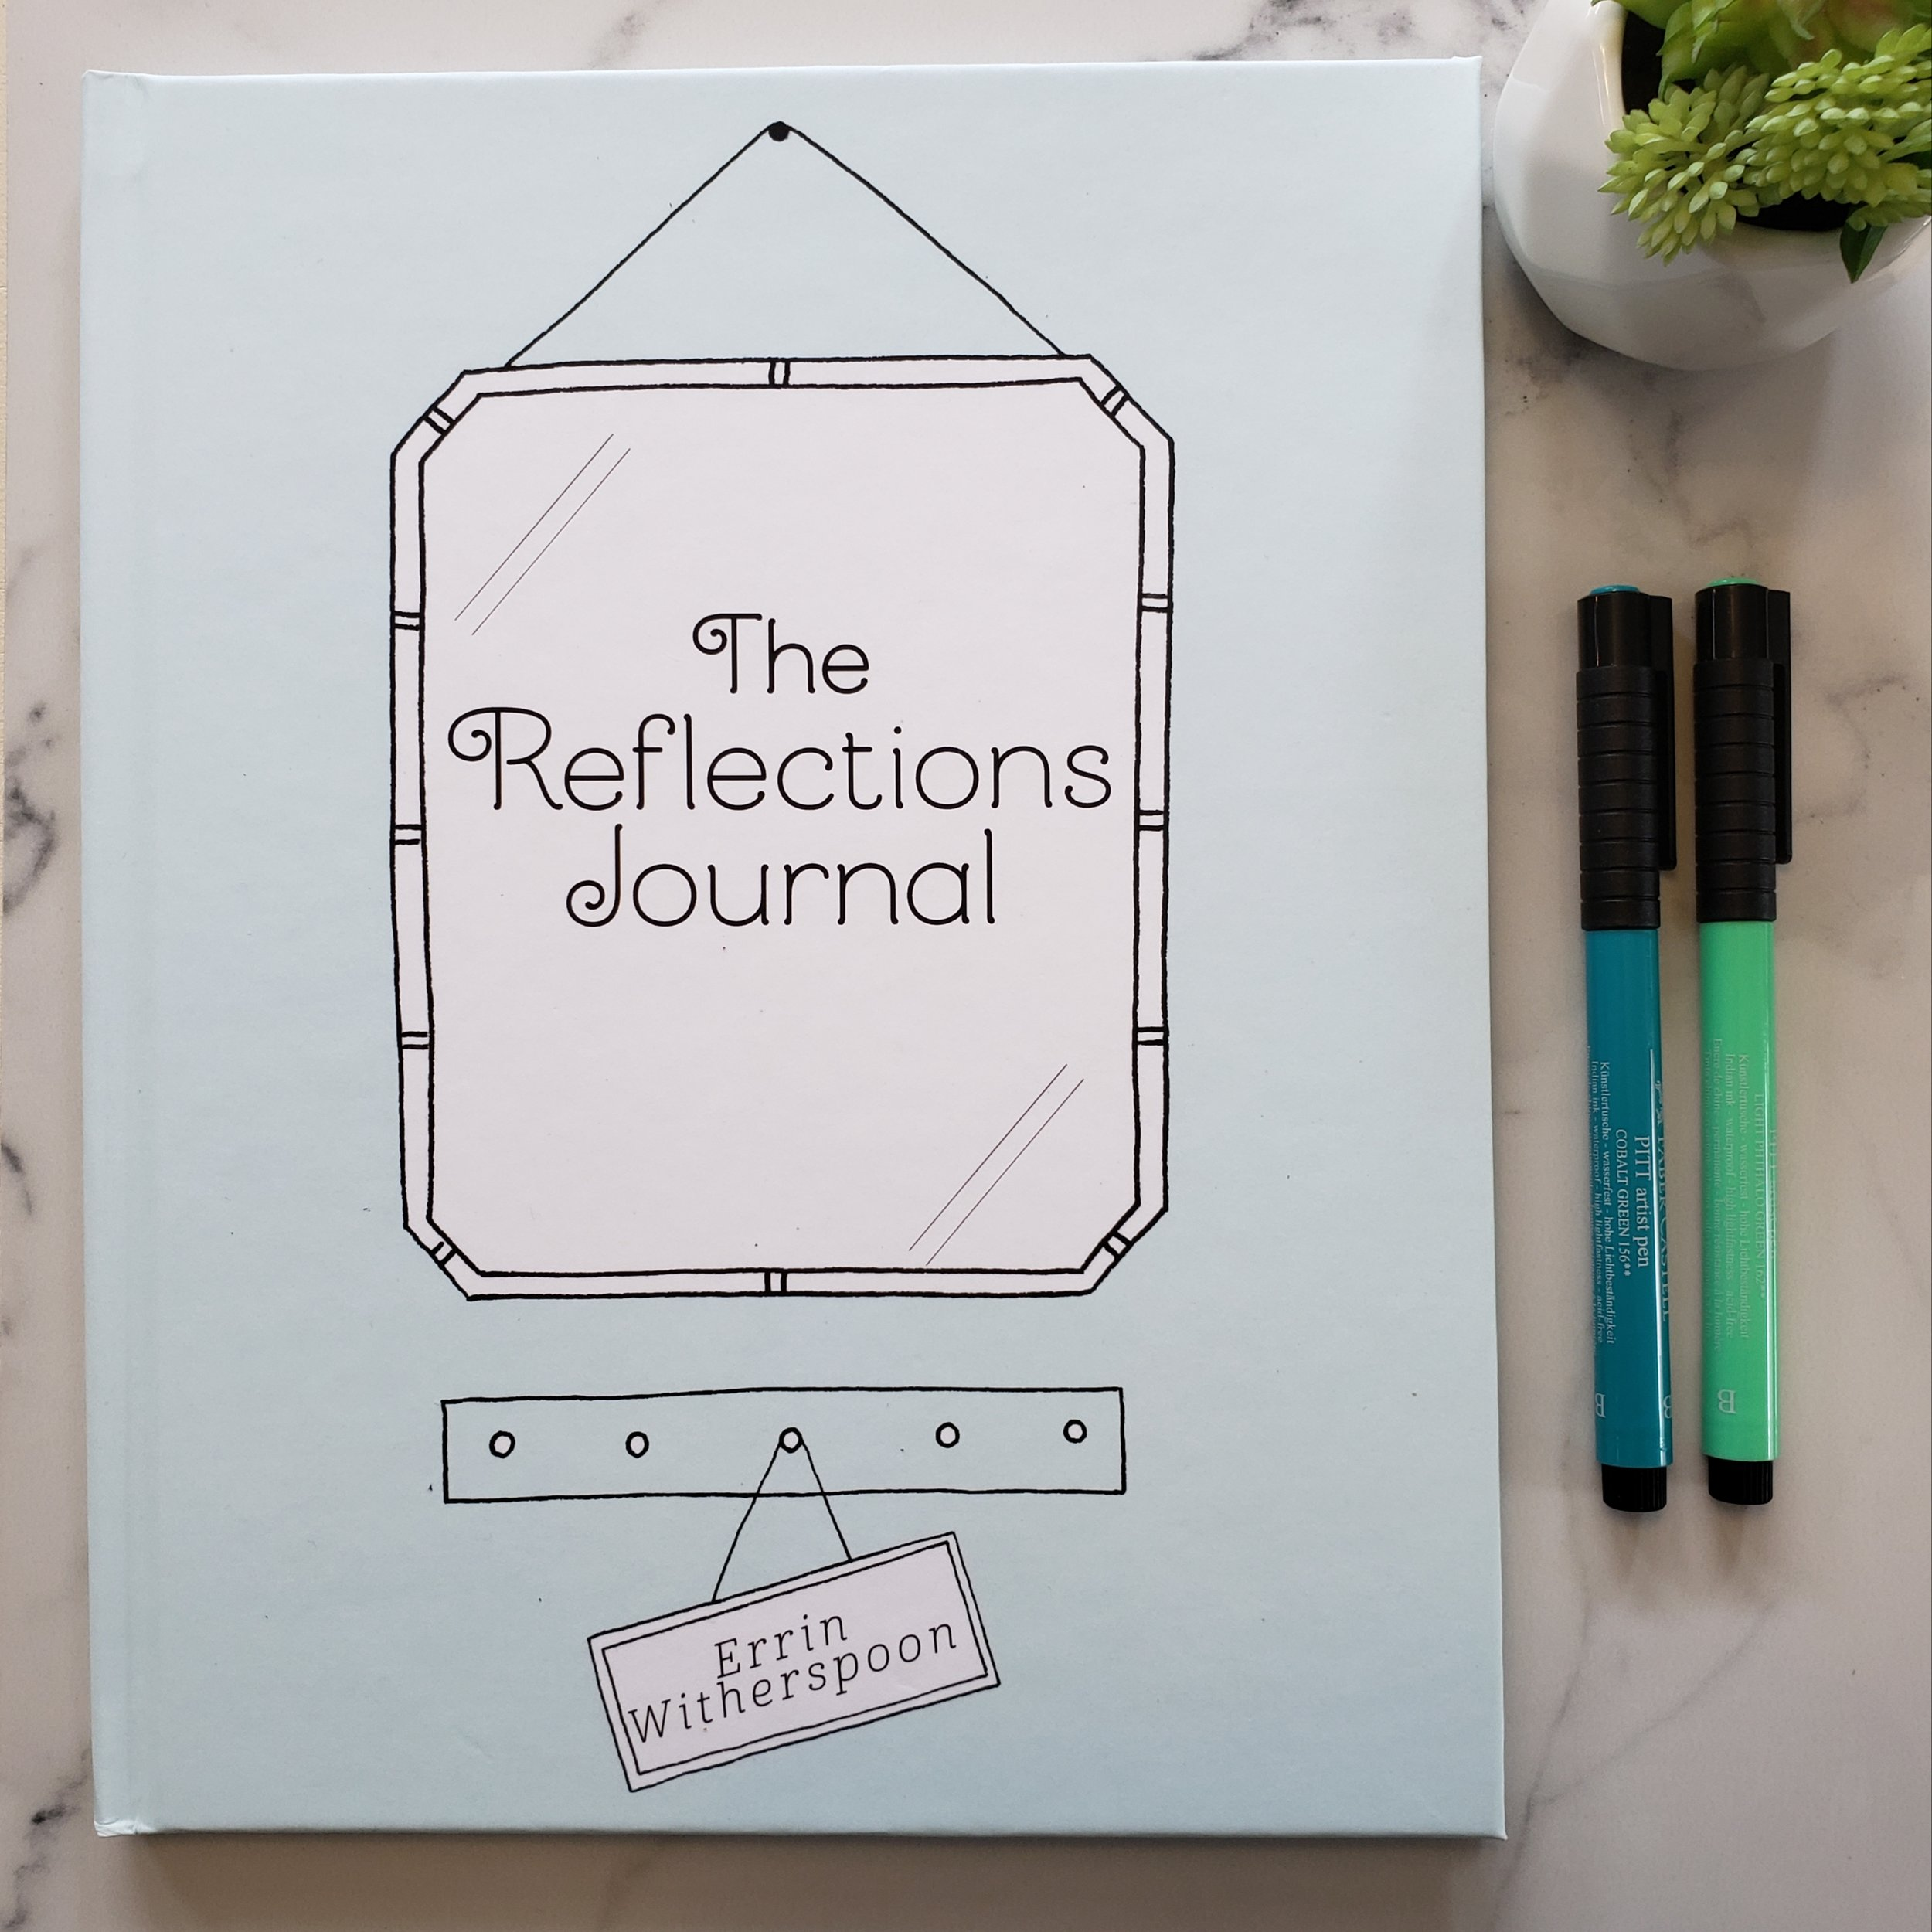 Take Action - Ready to take the next step?Take a look inside The Reflections Journal and decide if you're ready to try it out.